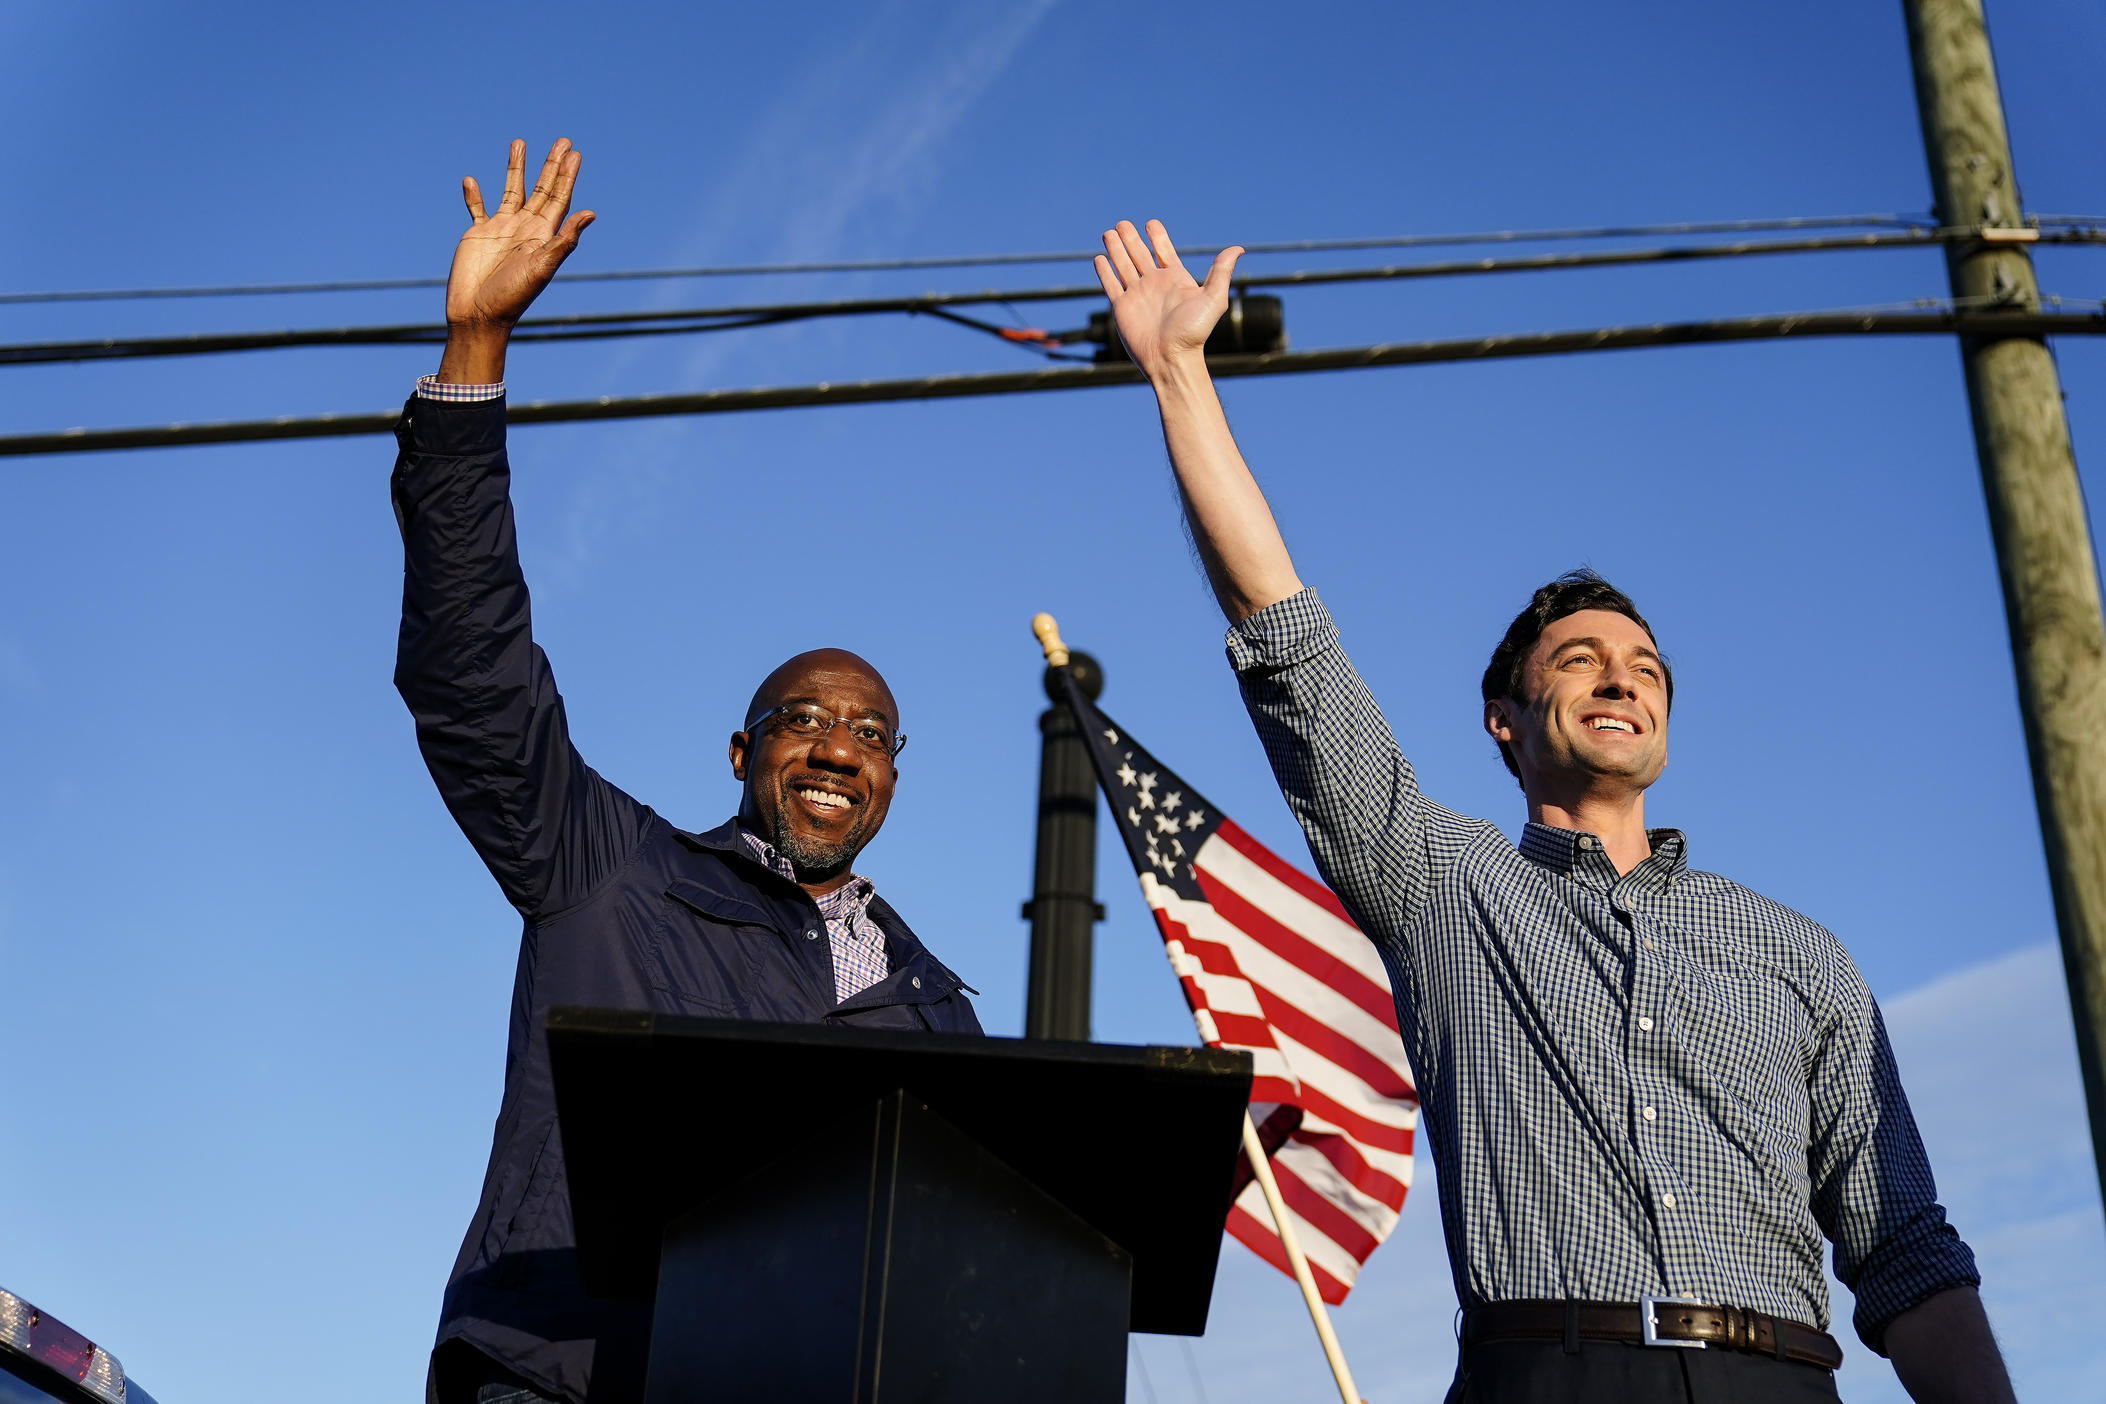 Georgia Democrats Raphael Warnock, left, and Jon Ossoff, right, gesture toward a crowd during a campaign rally in Marietta, Ga in November 2020. The two won seats to the U.S. Senate in runoff races in January 2021.